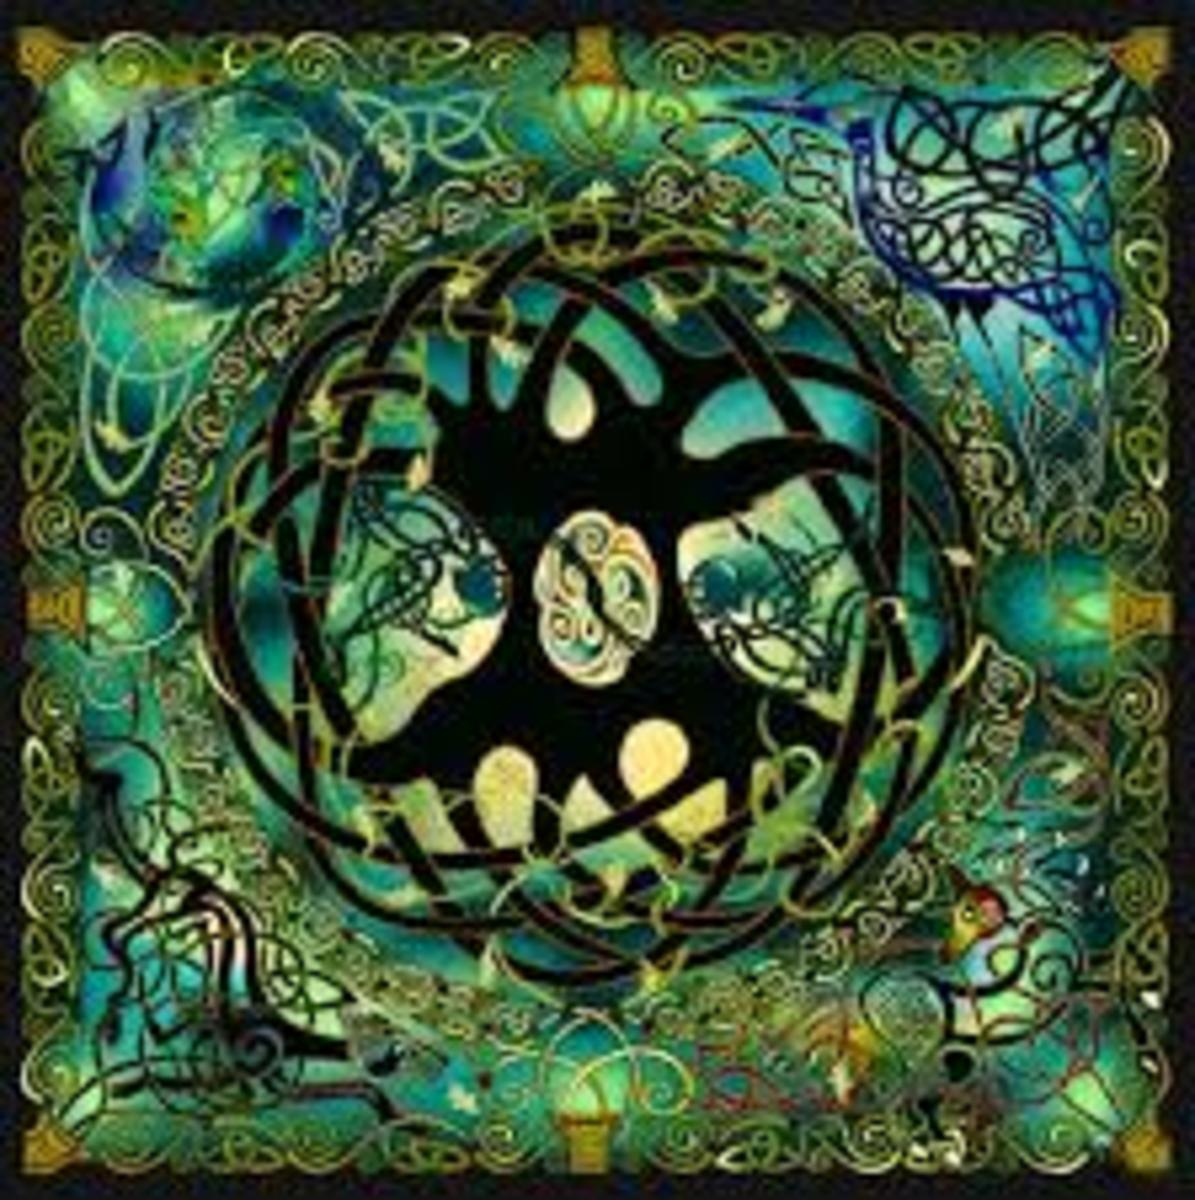 The Tree of Life design inside a Hollow Earth motif seems to be a reoccurring theme in Celtic art .